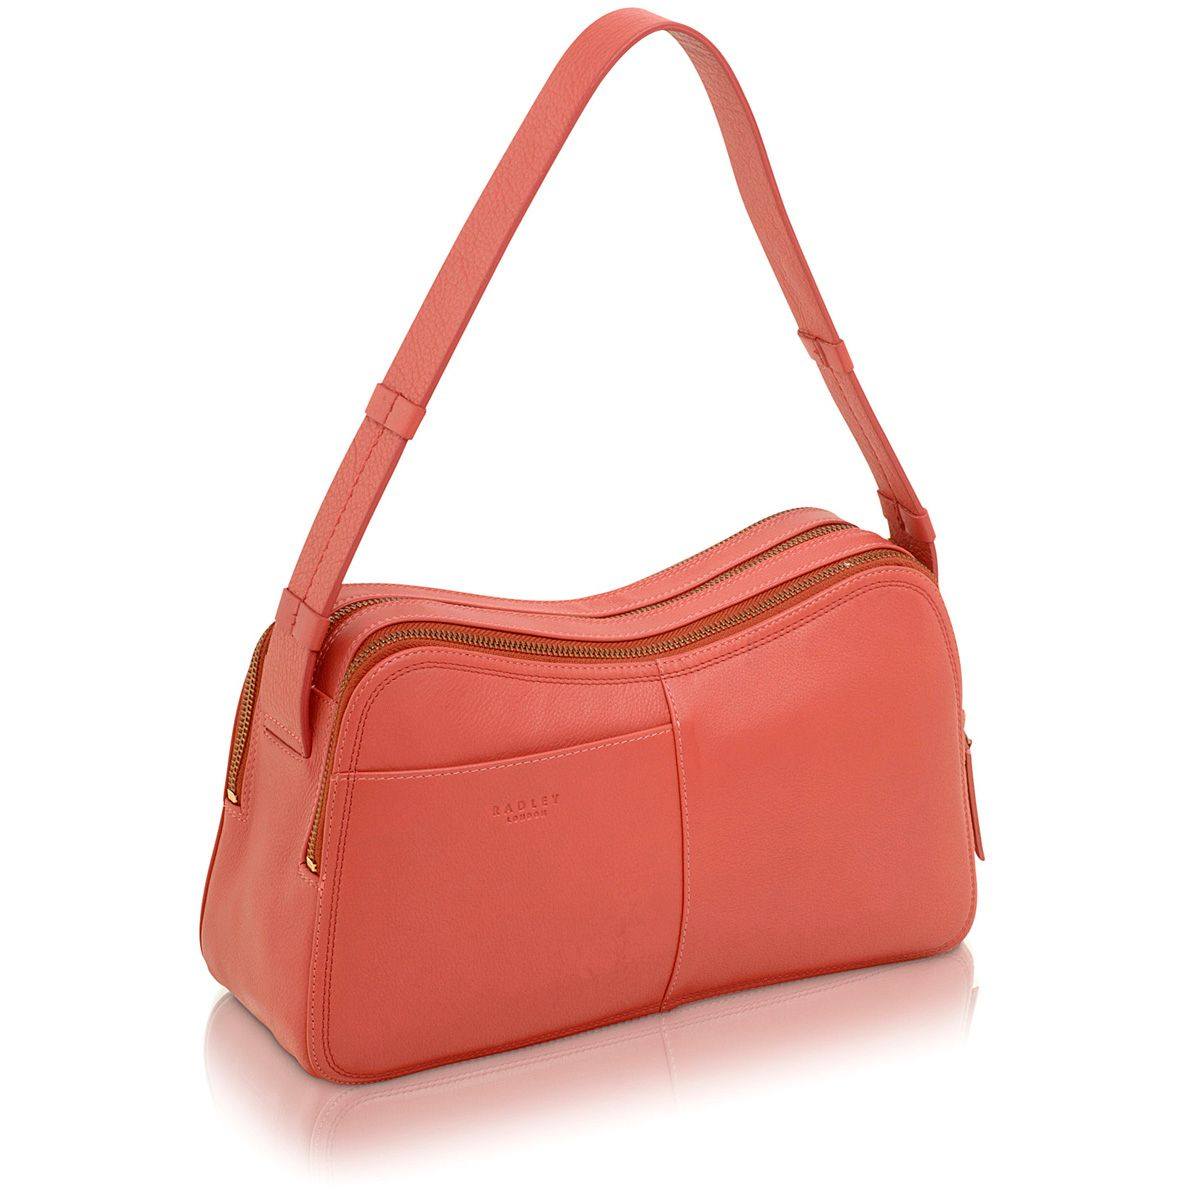 Westbury pink medium shoulder bag